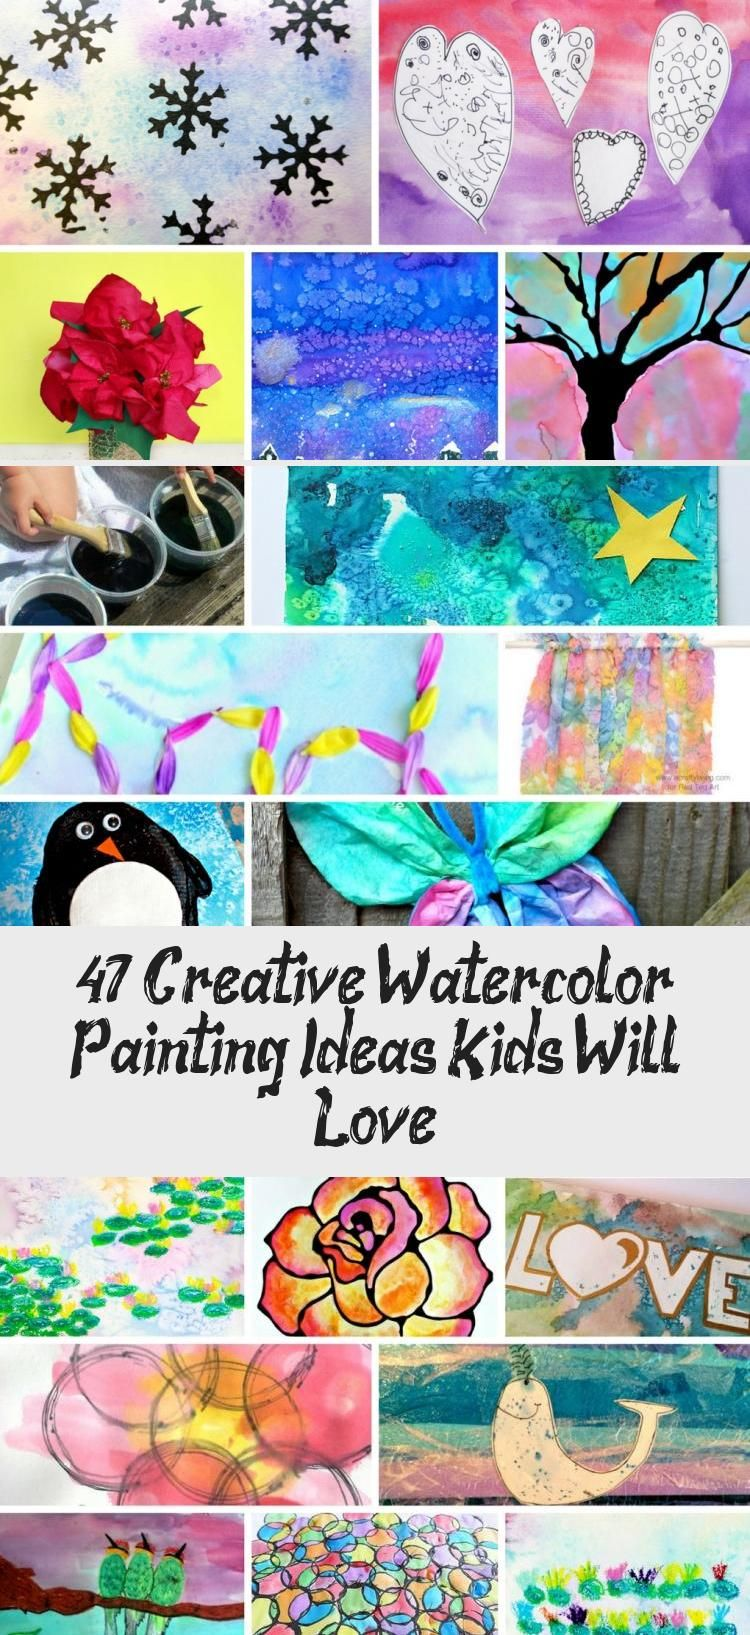 47 Creative Watercolor Painting Ideas Kids Will Love In 2020